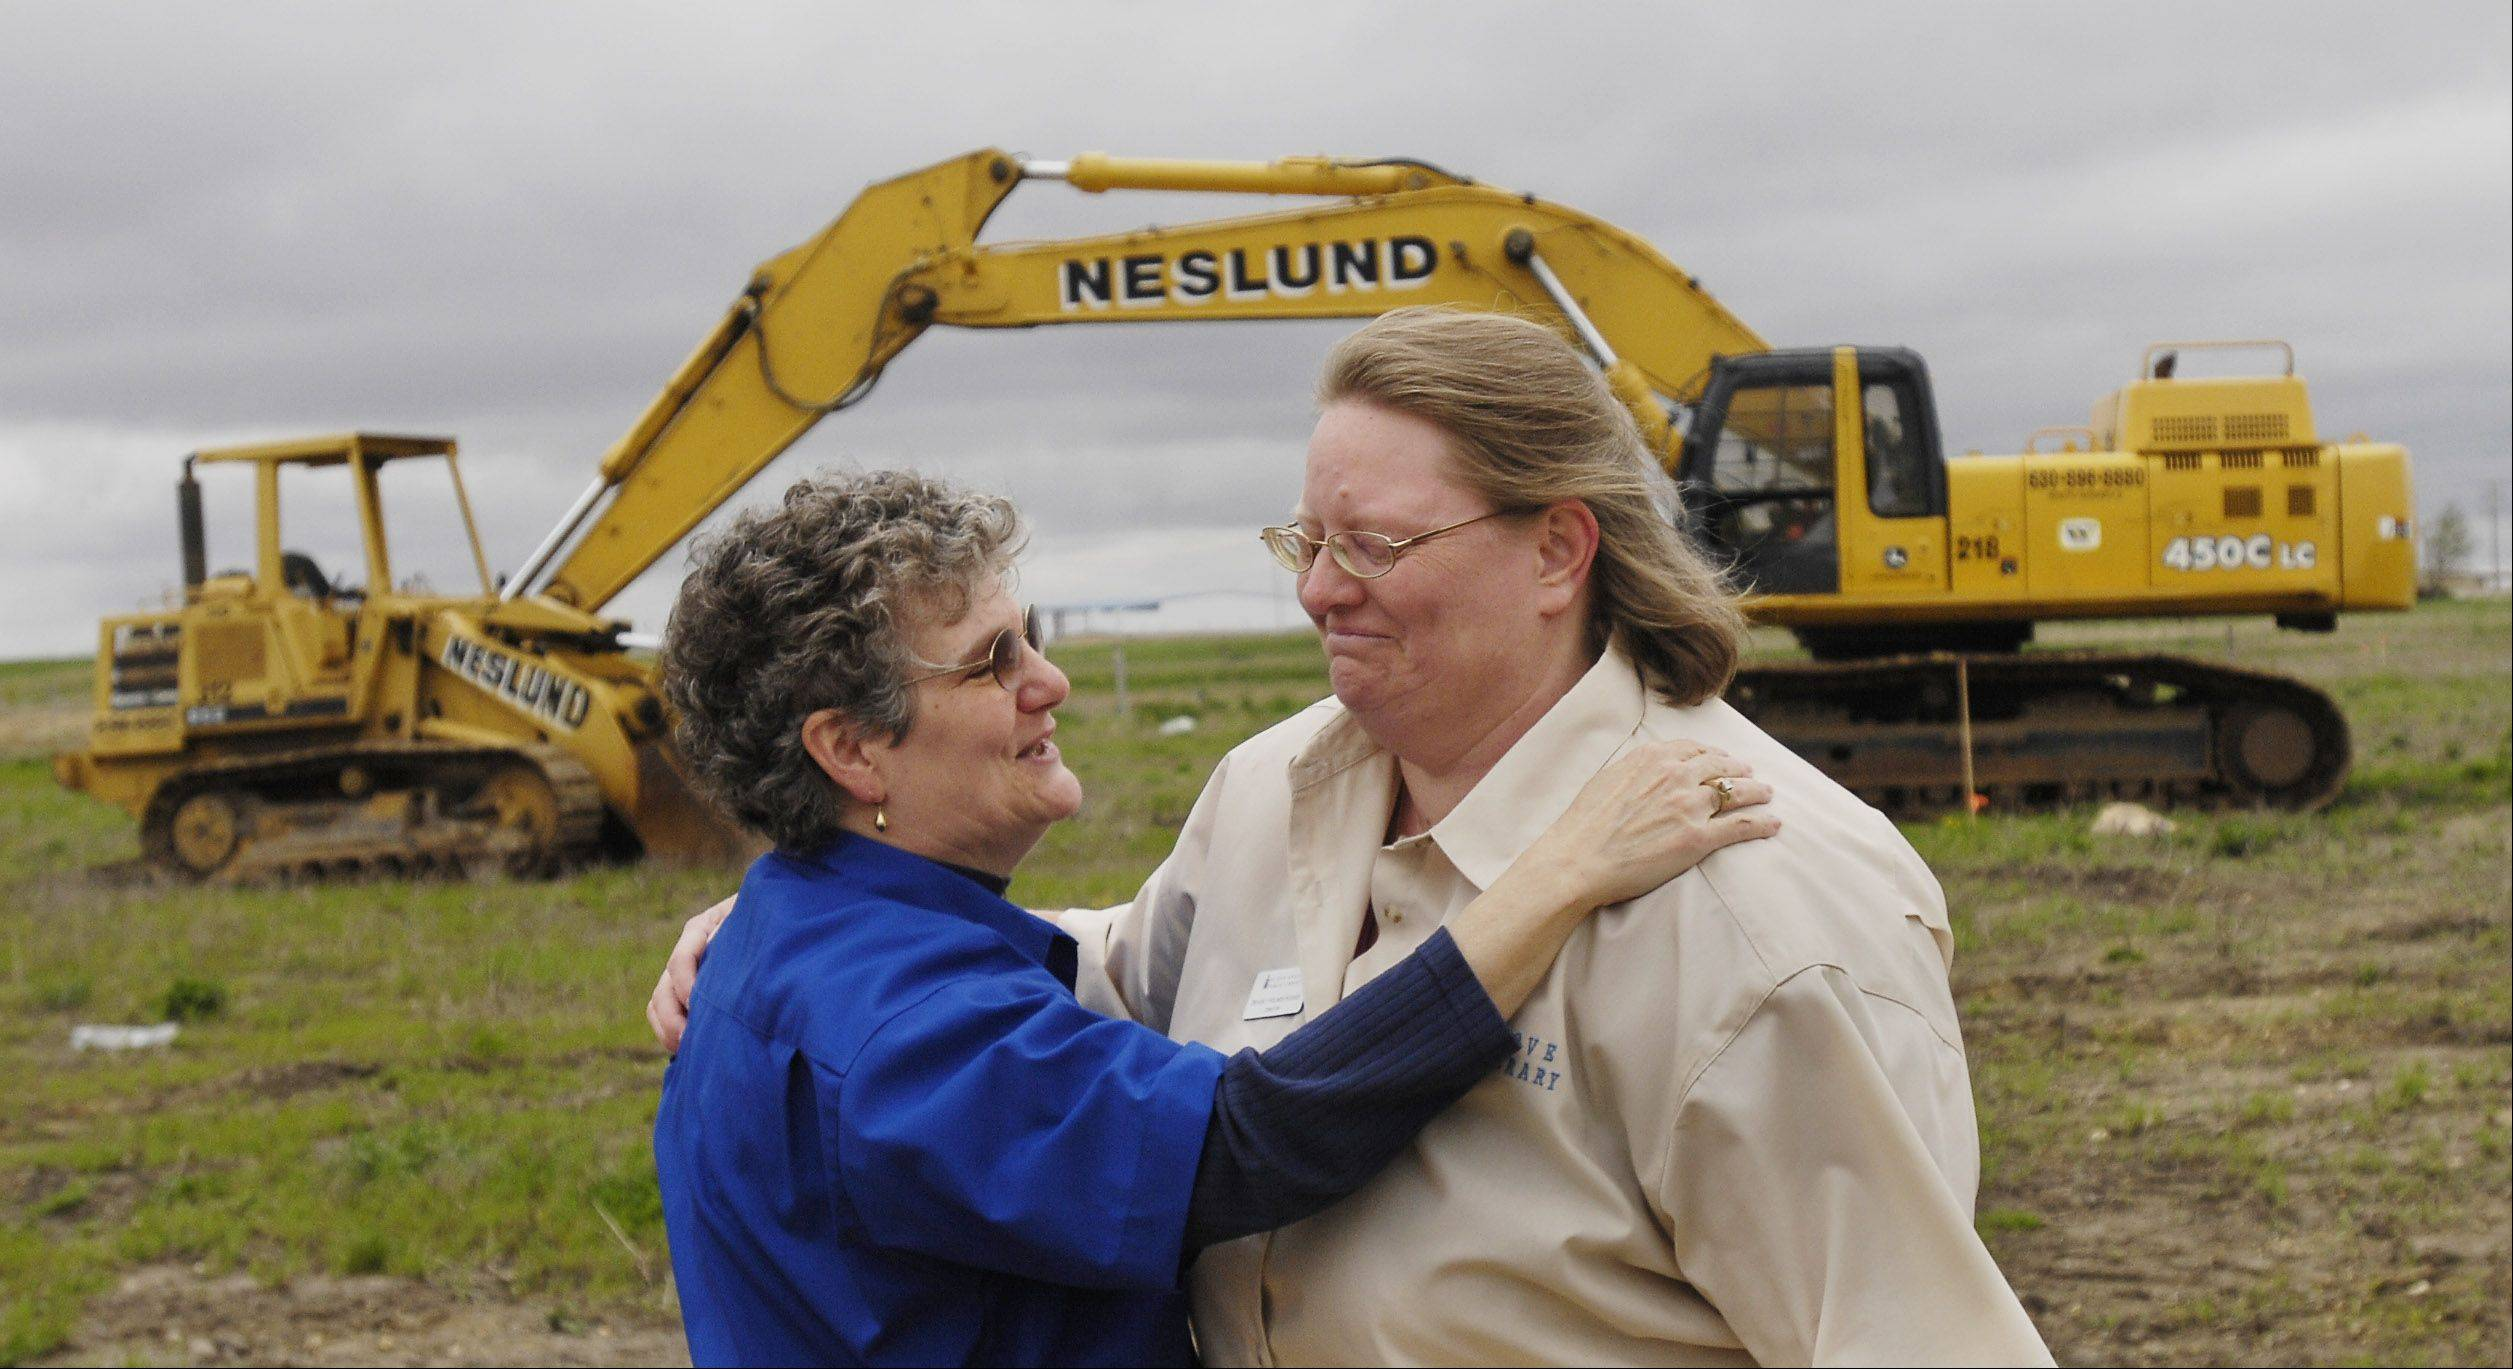 Library Director Beverly Holmes Hughes, right and circulation Director Michelle Drawz, share an emotional moment during groundbreaking ceremonies for the new Sugar Grove Library. Hughes was fired July 14.